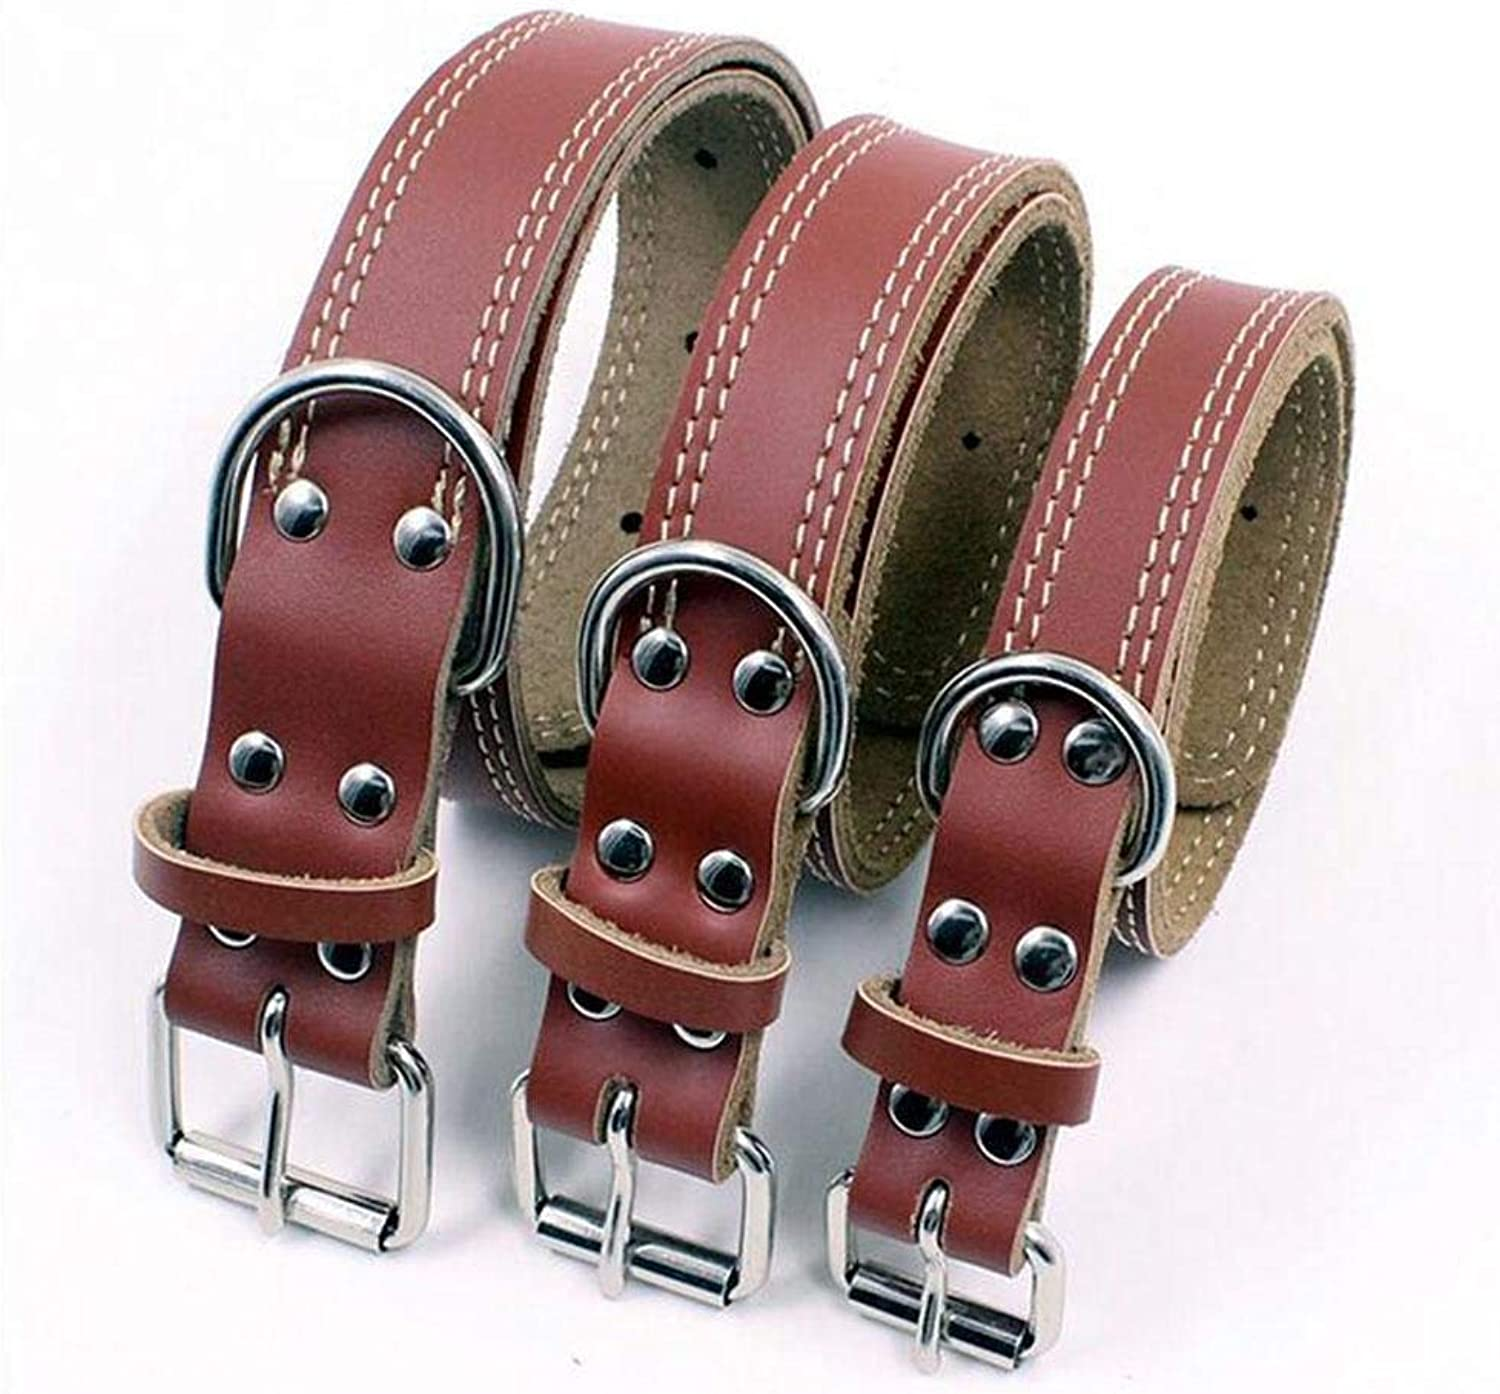 Dog Lead Vivifying Leather Dog Collar, Durable and Comfortable Genuine Leather Pet Collar for Large, Medium and Small Dogs, Choice of Size(Brown), M Dog Training Leash (Size   M)